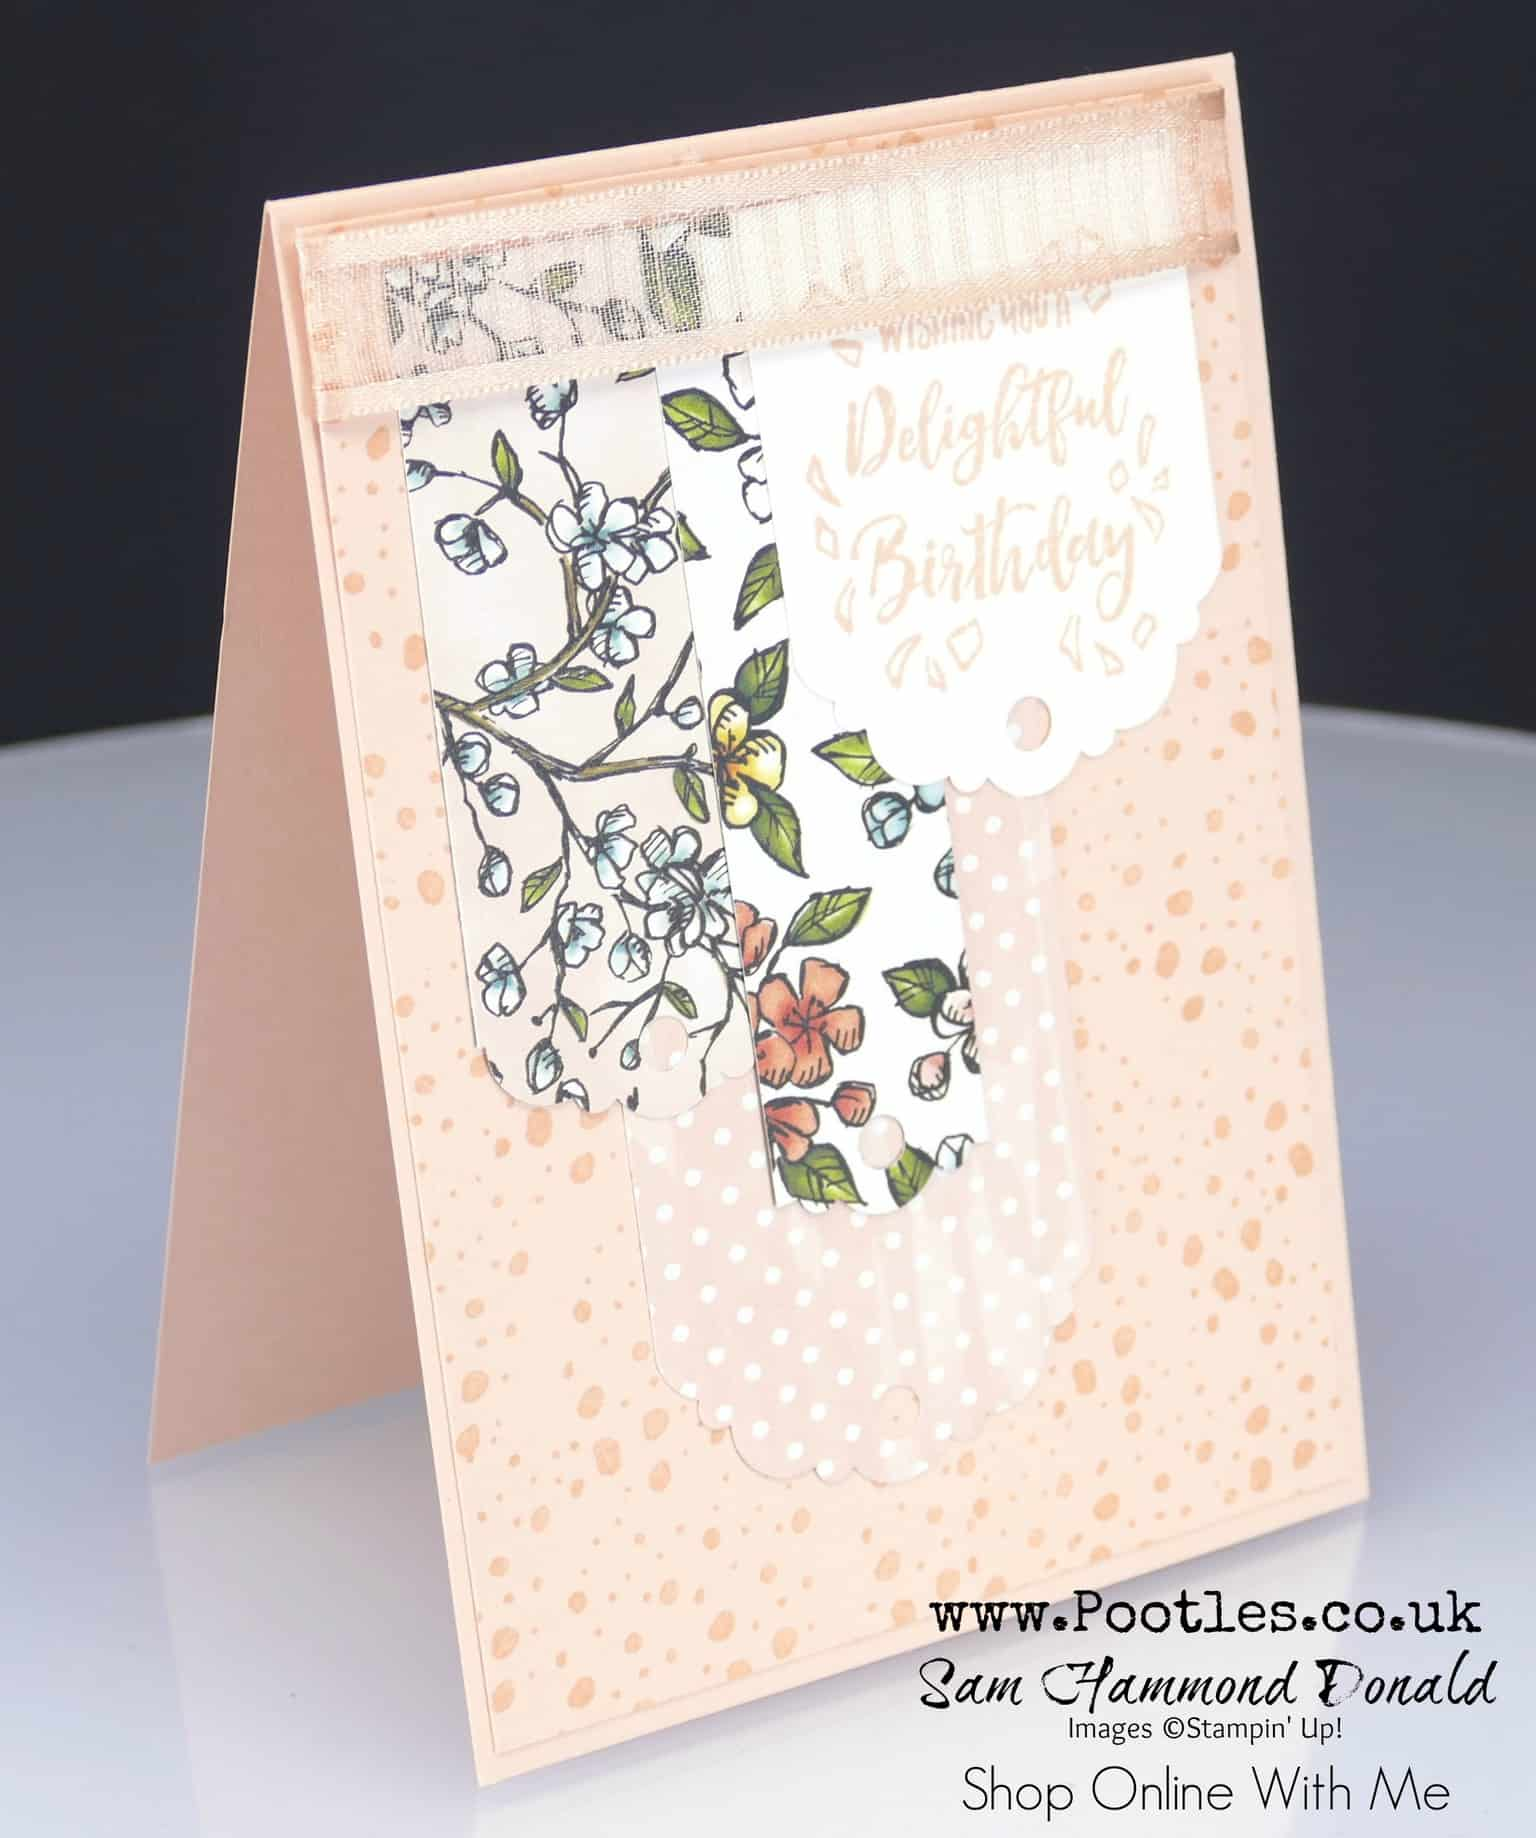 1 Stampin' Up! Demonstrator Pootles – A Delightful Day of